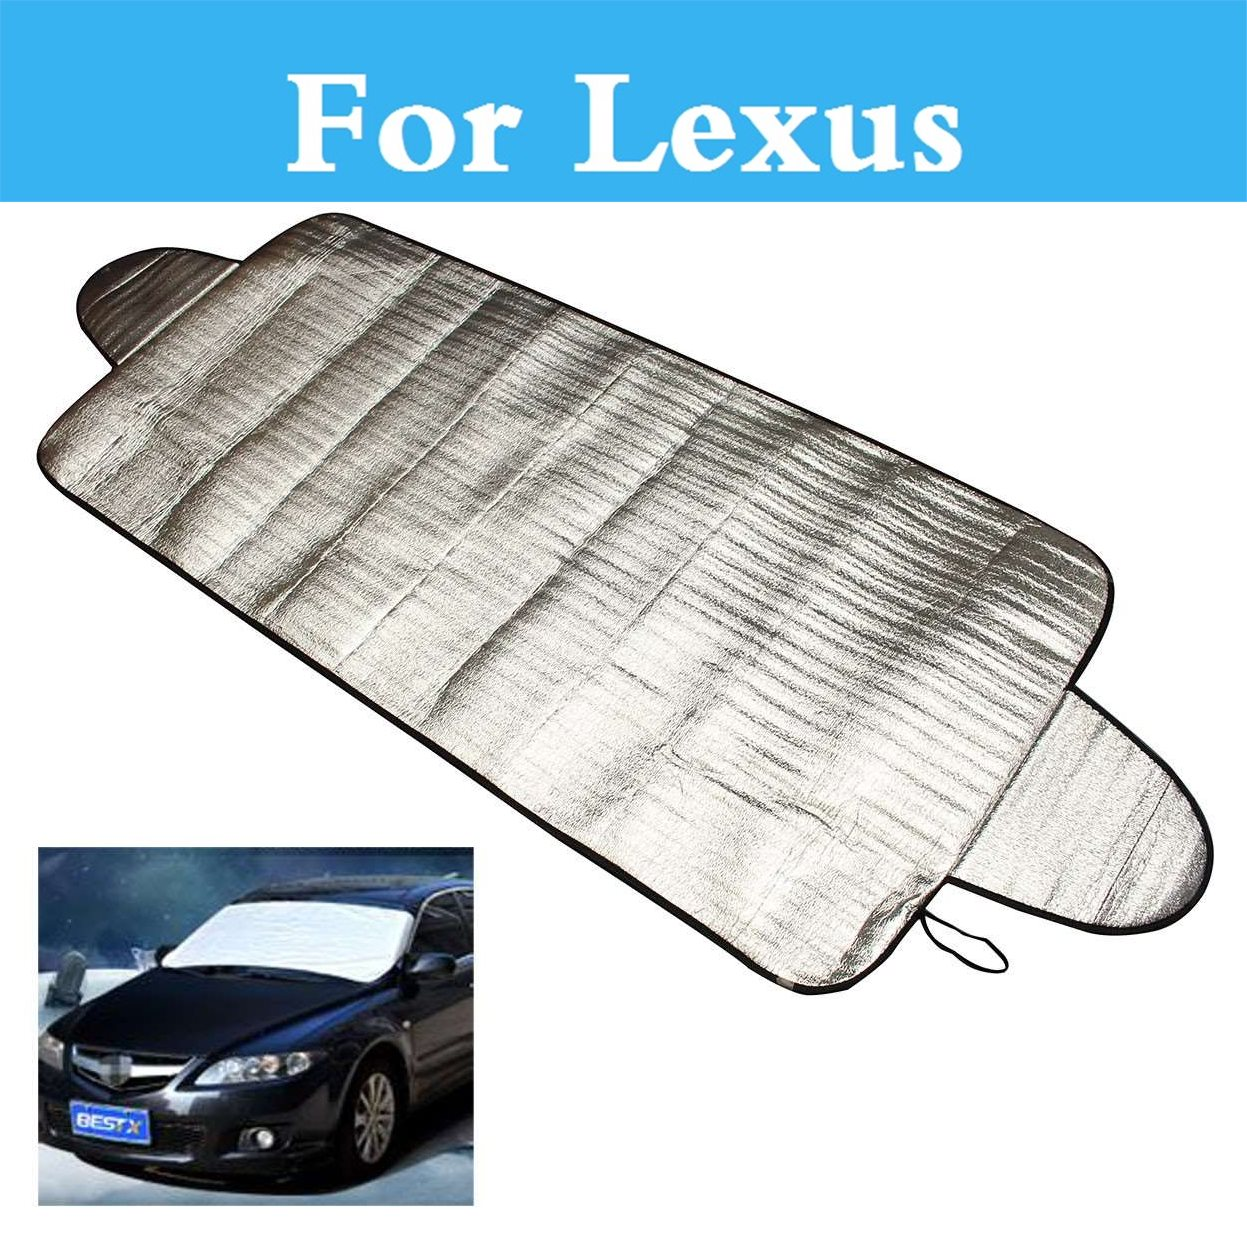 Multi-purpose Car Windshield Anti Snow Shade Cover Protector For Lexus LFA LS LX NX RC RC F RX SC CT ES GS GS F GX HS IS IS F